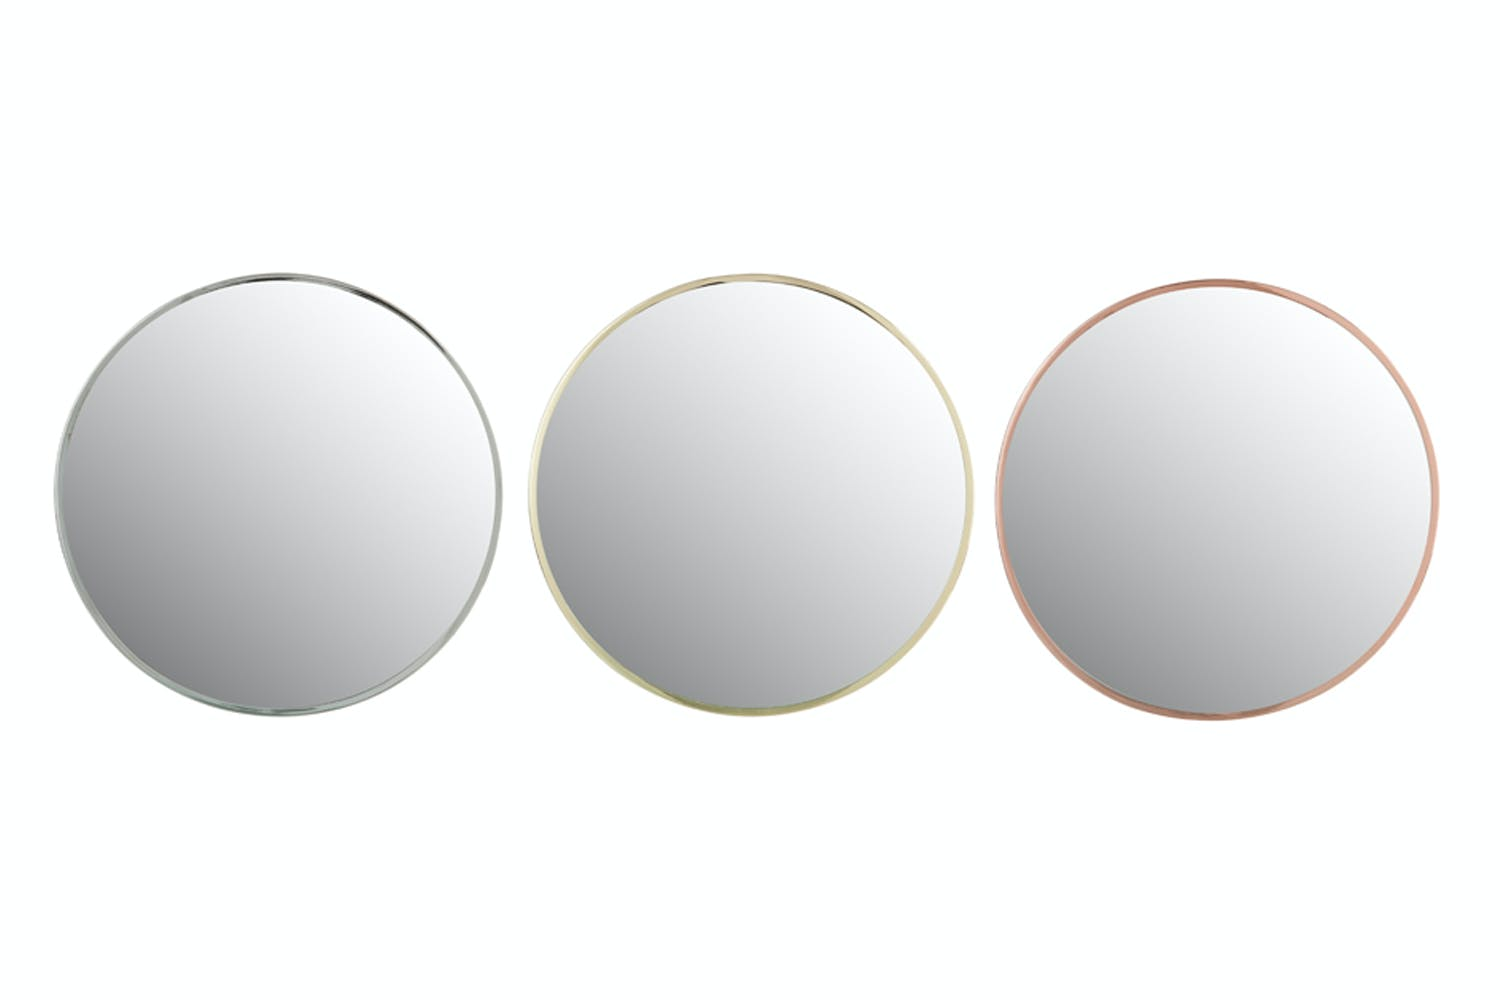 76f356842f40 Small Round Mirror in Metal Frame